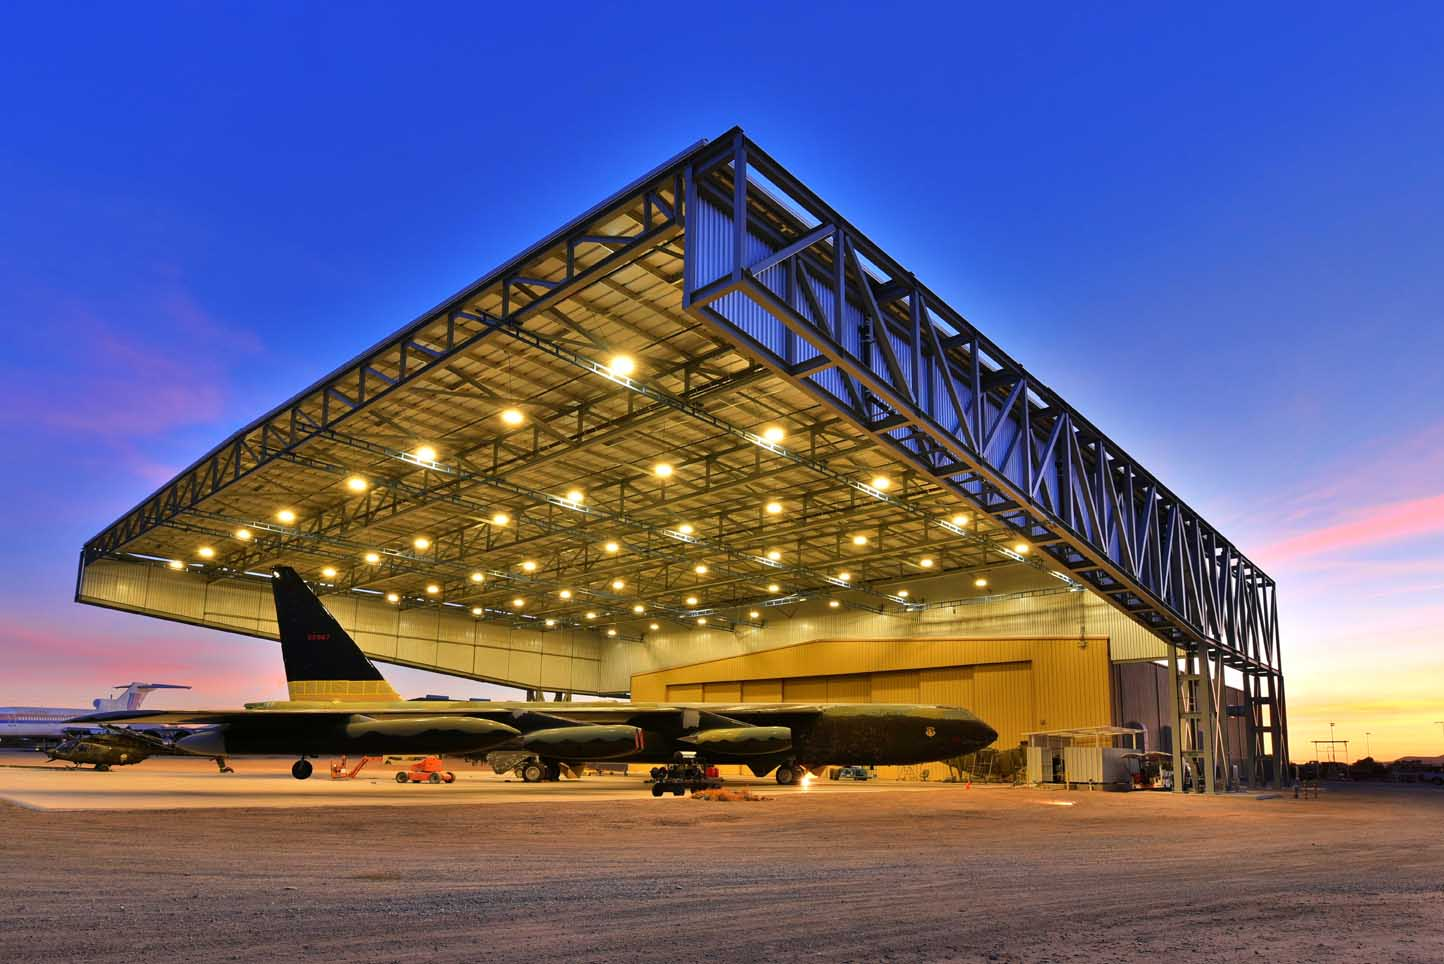 Pima Air and Space Museum General Contractor: Lloyd Construction (Photo courtesy of Lloyd Construction) Electrical